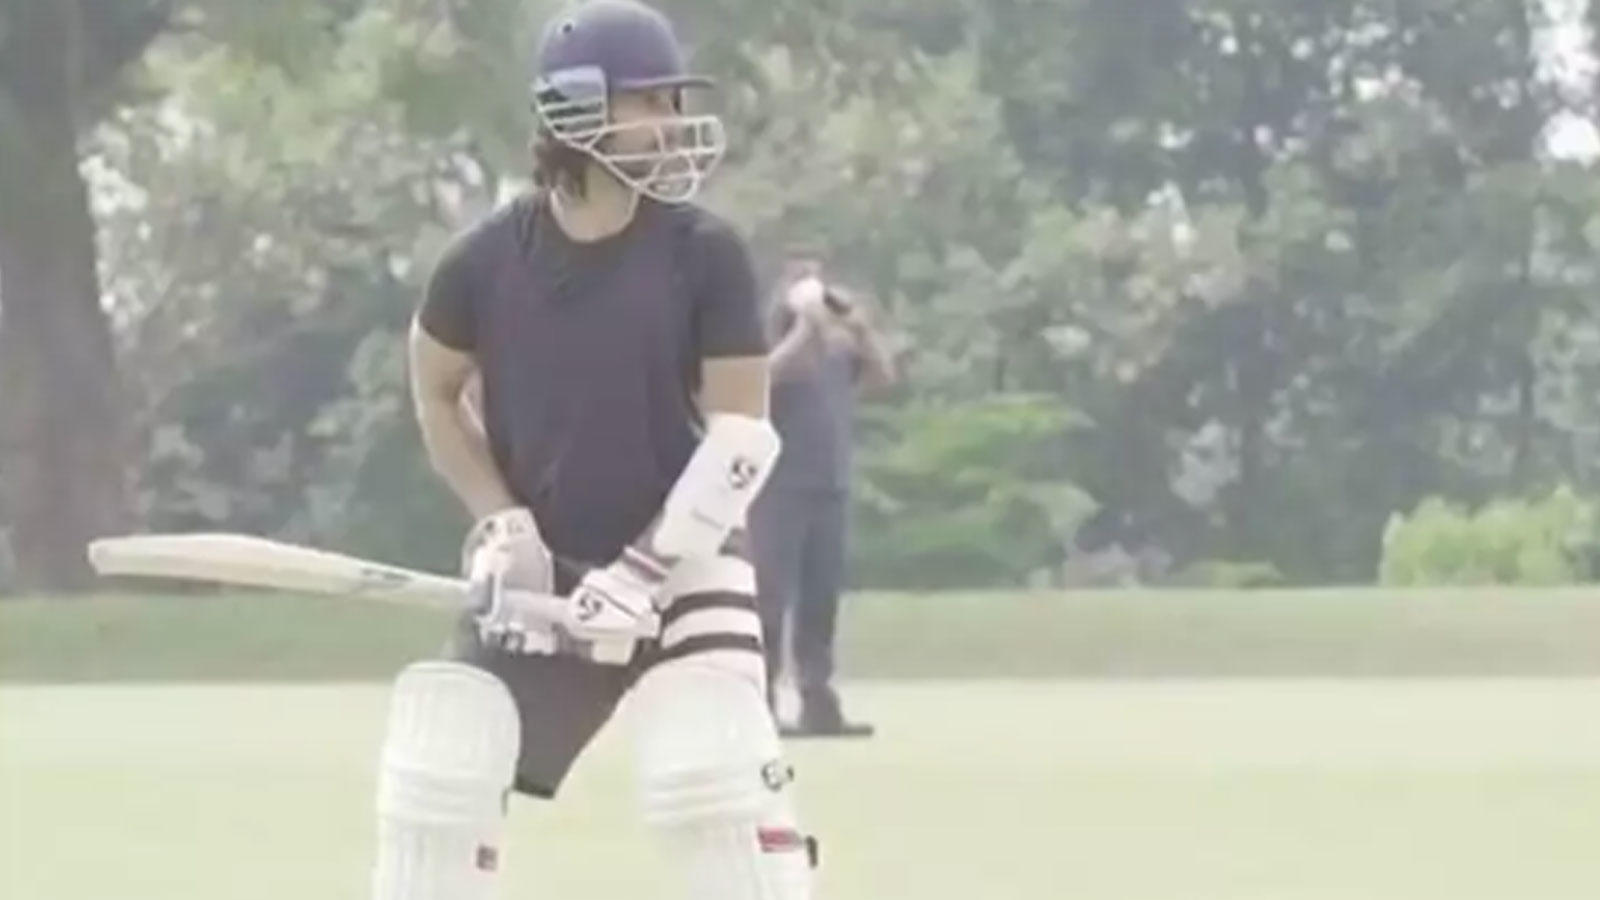 jersey-shahid-kapoor-shares-video-of-his-early-morning-practice-session